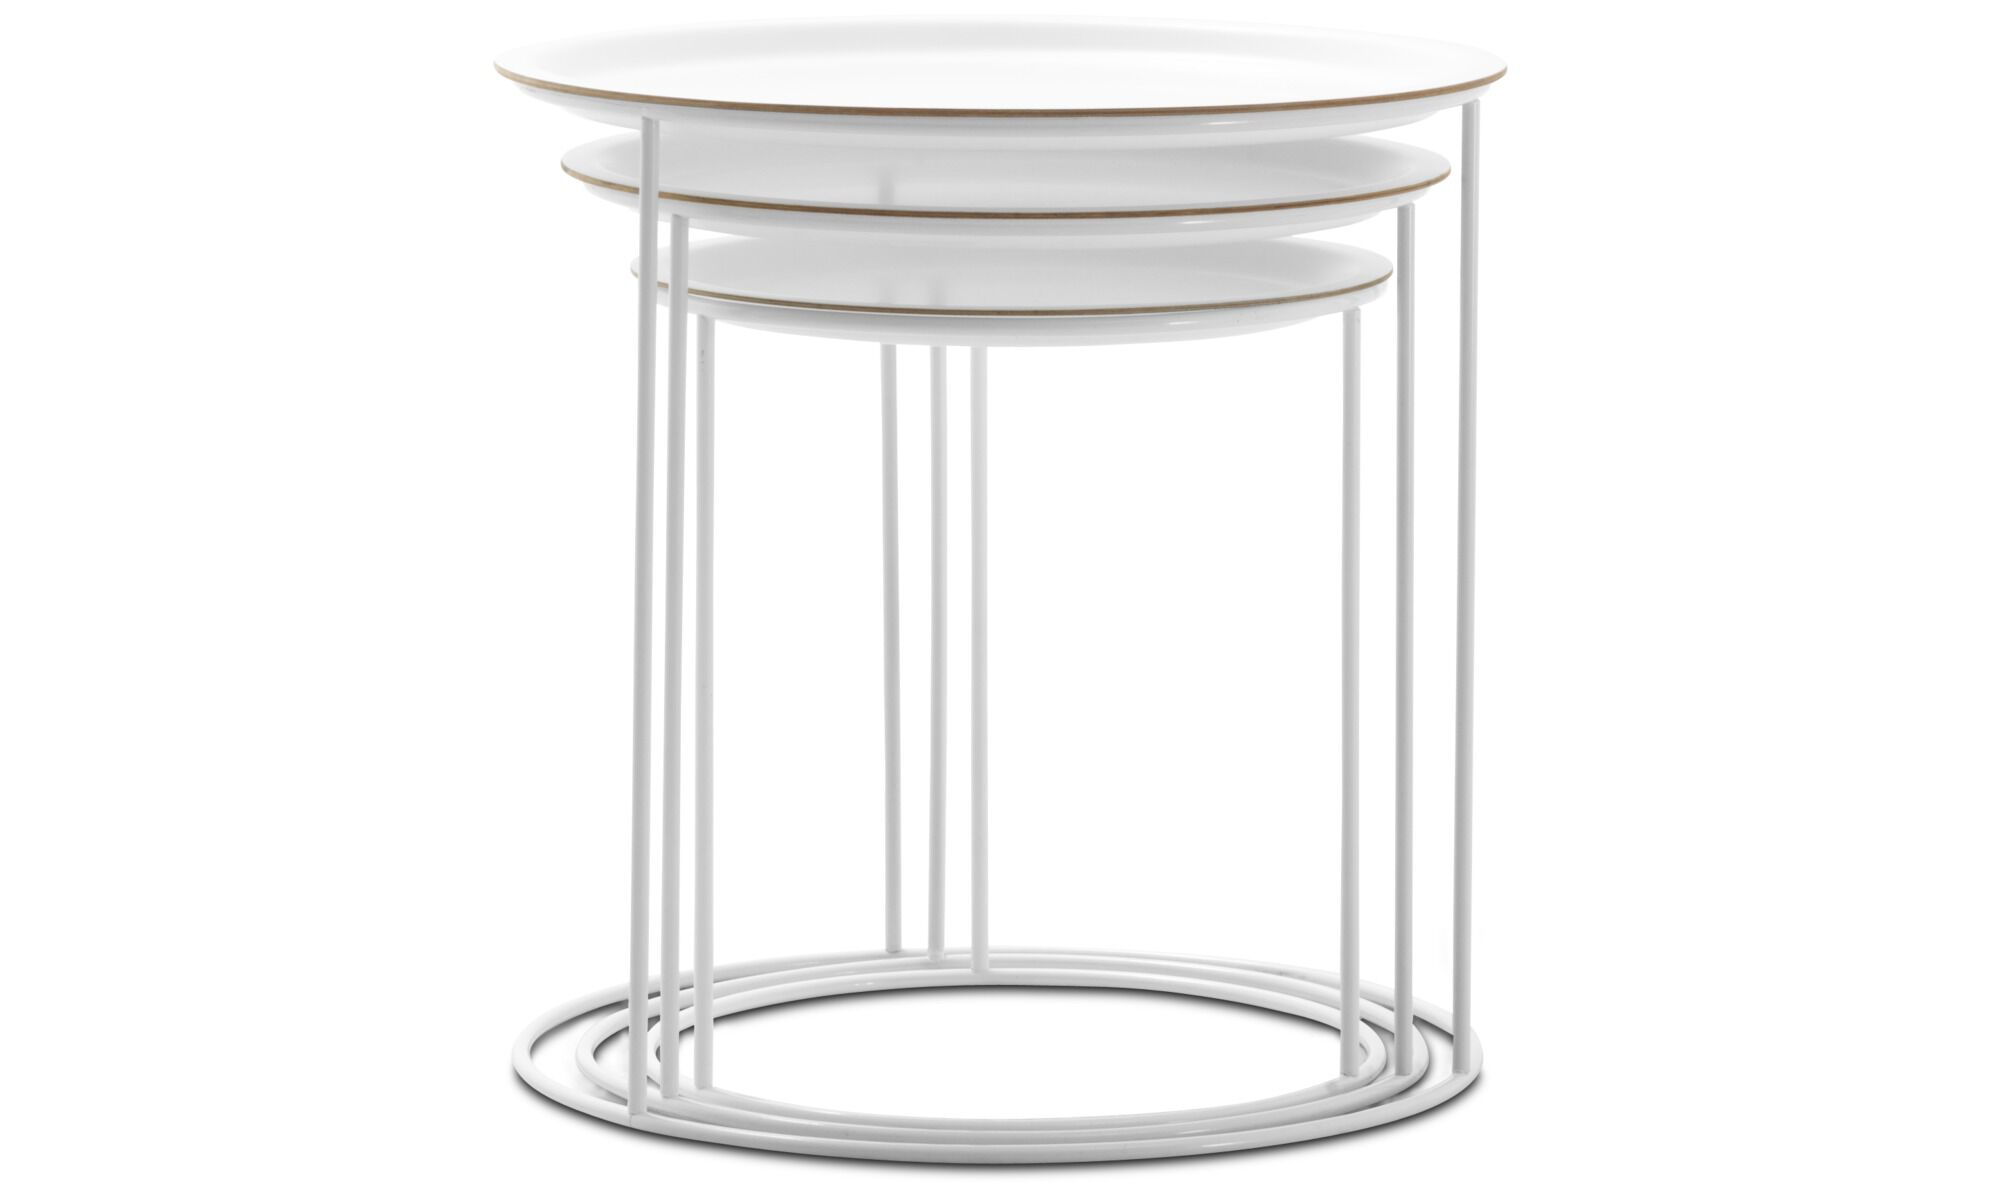 Coffee Tables   Cartagena Nesting Tables   Round   White   Lacquered